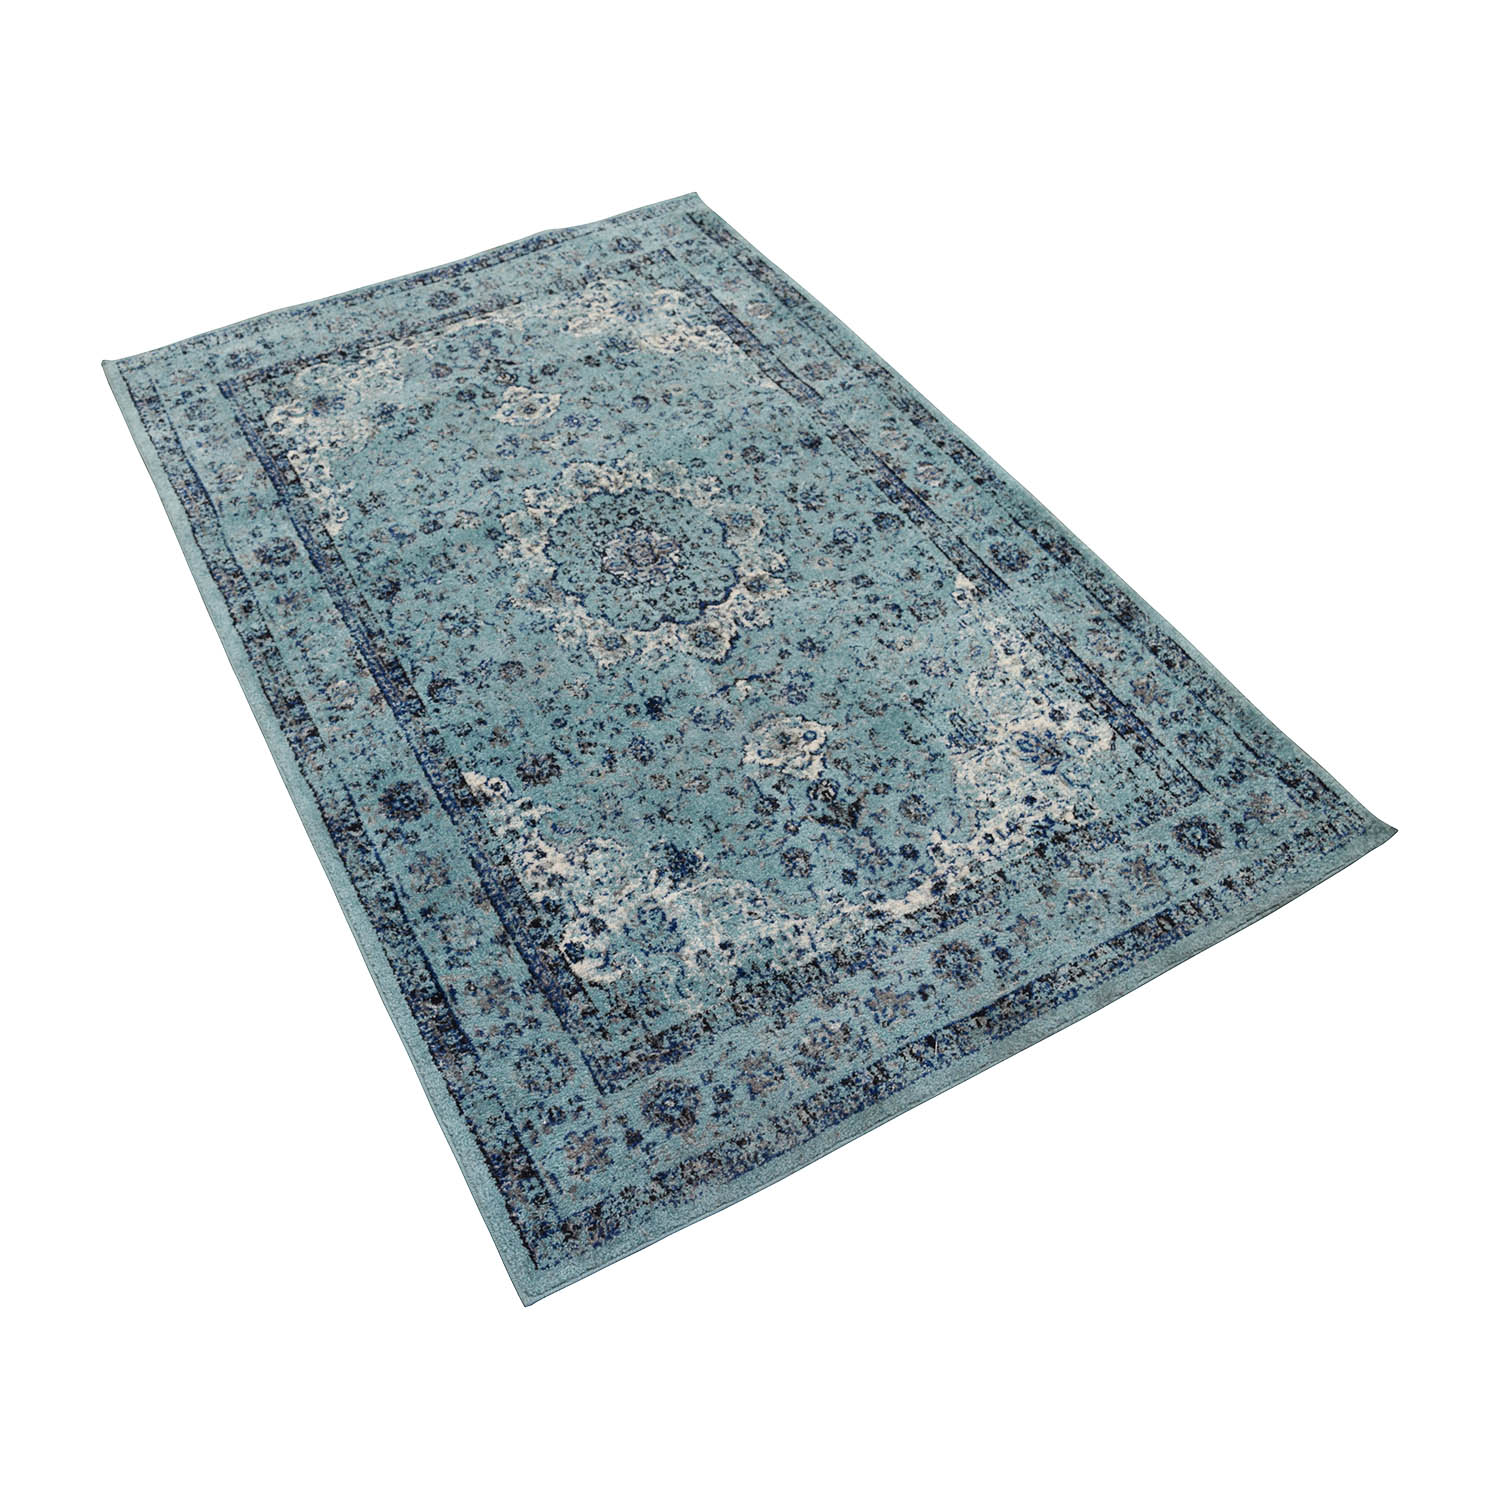 Safavieh Safavieh Turquoise Navy and White Rug on sale